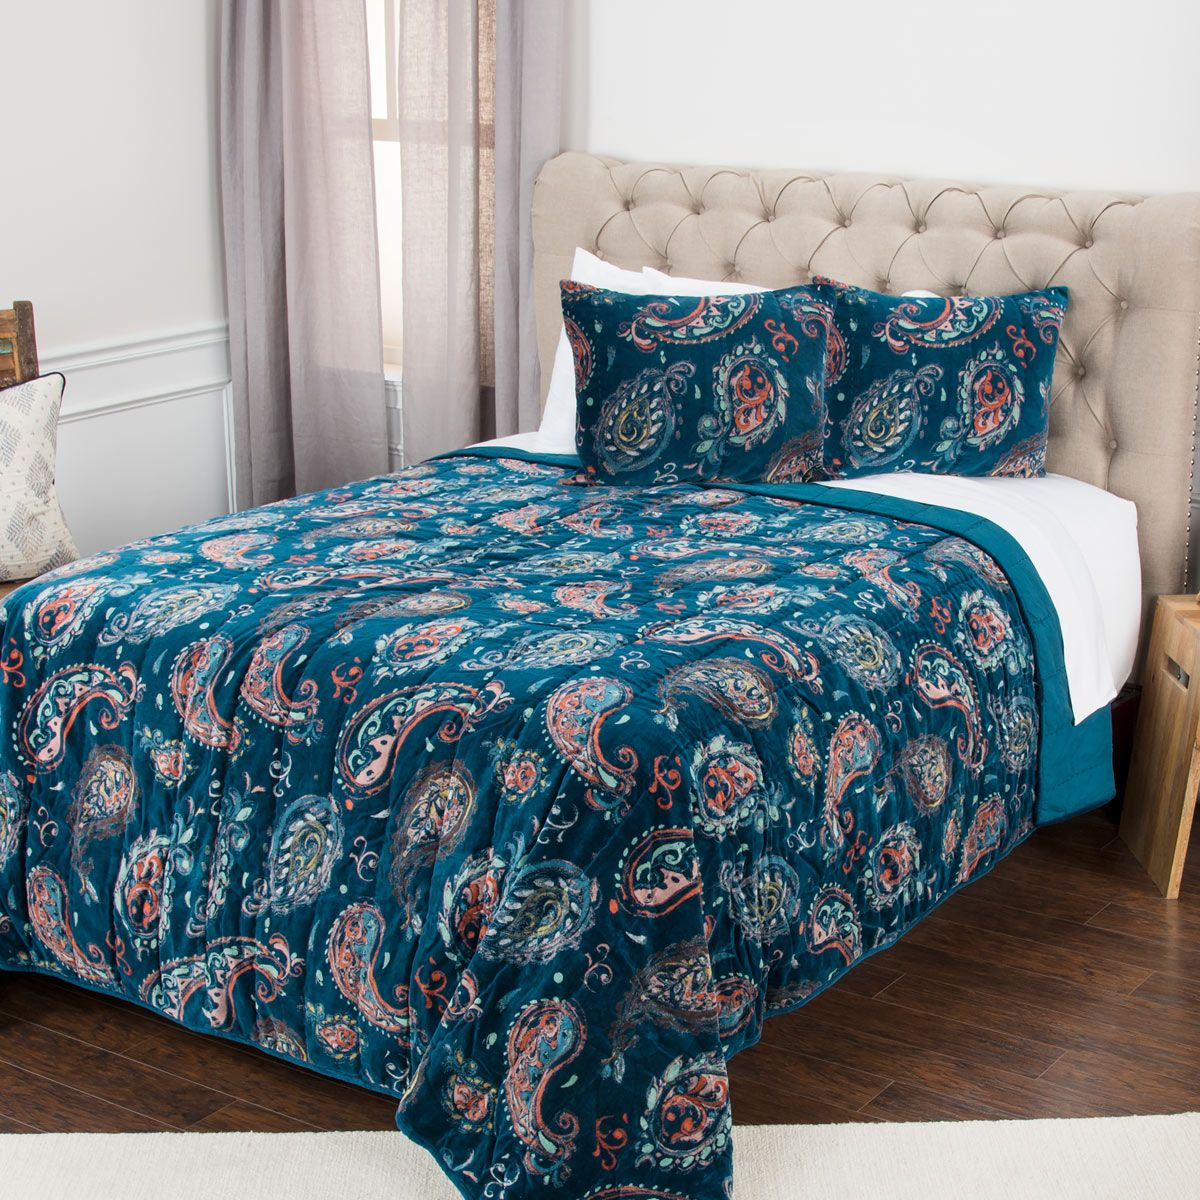 Painted Perfection Quilt Full/Queen